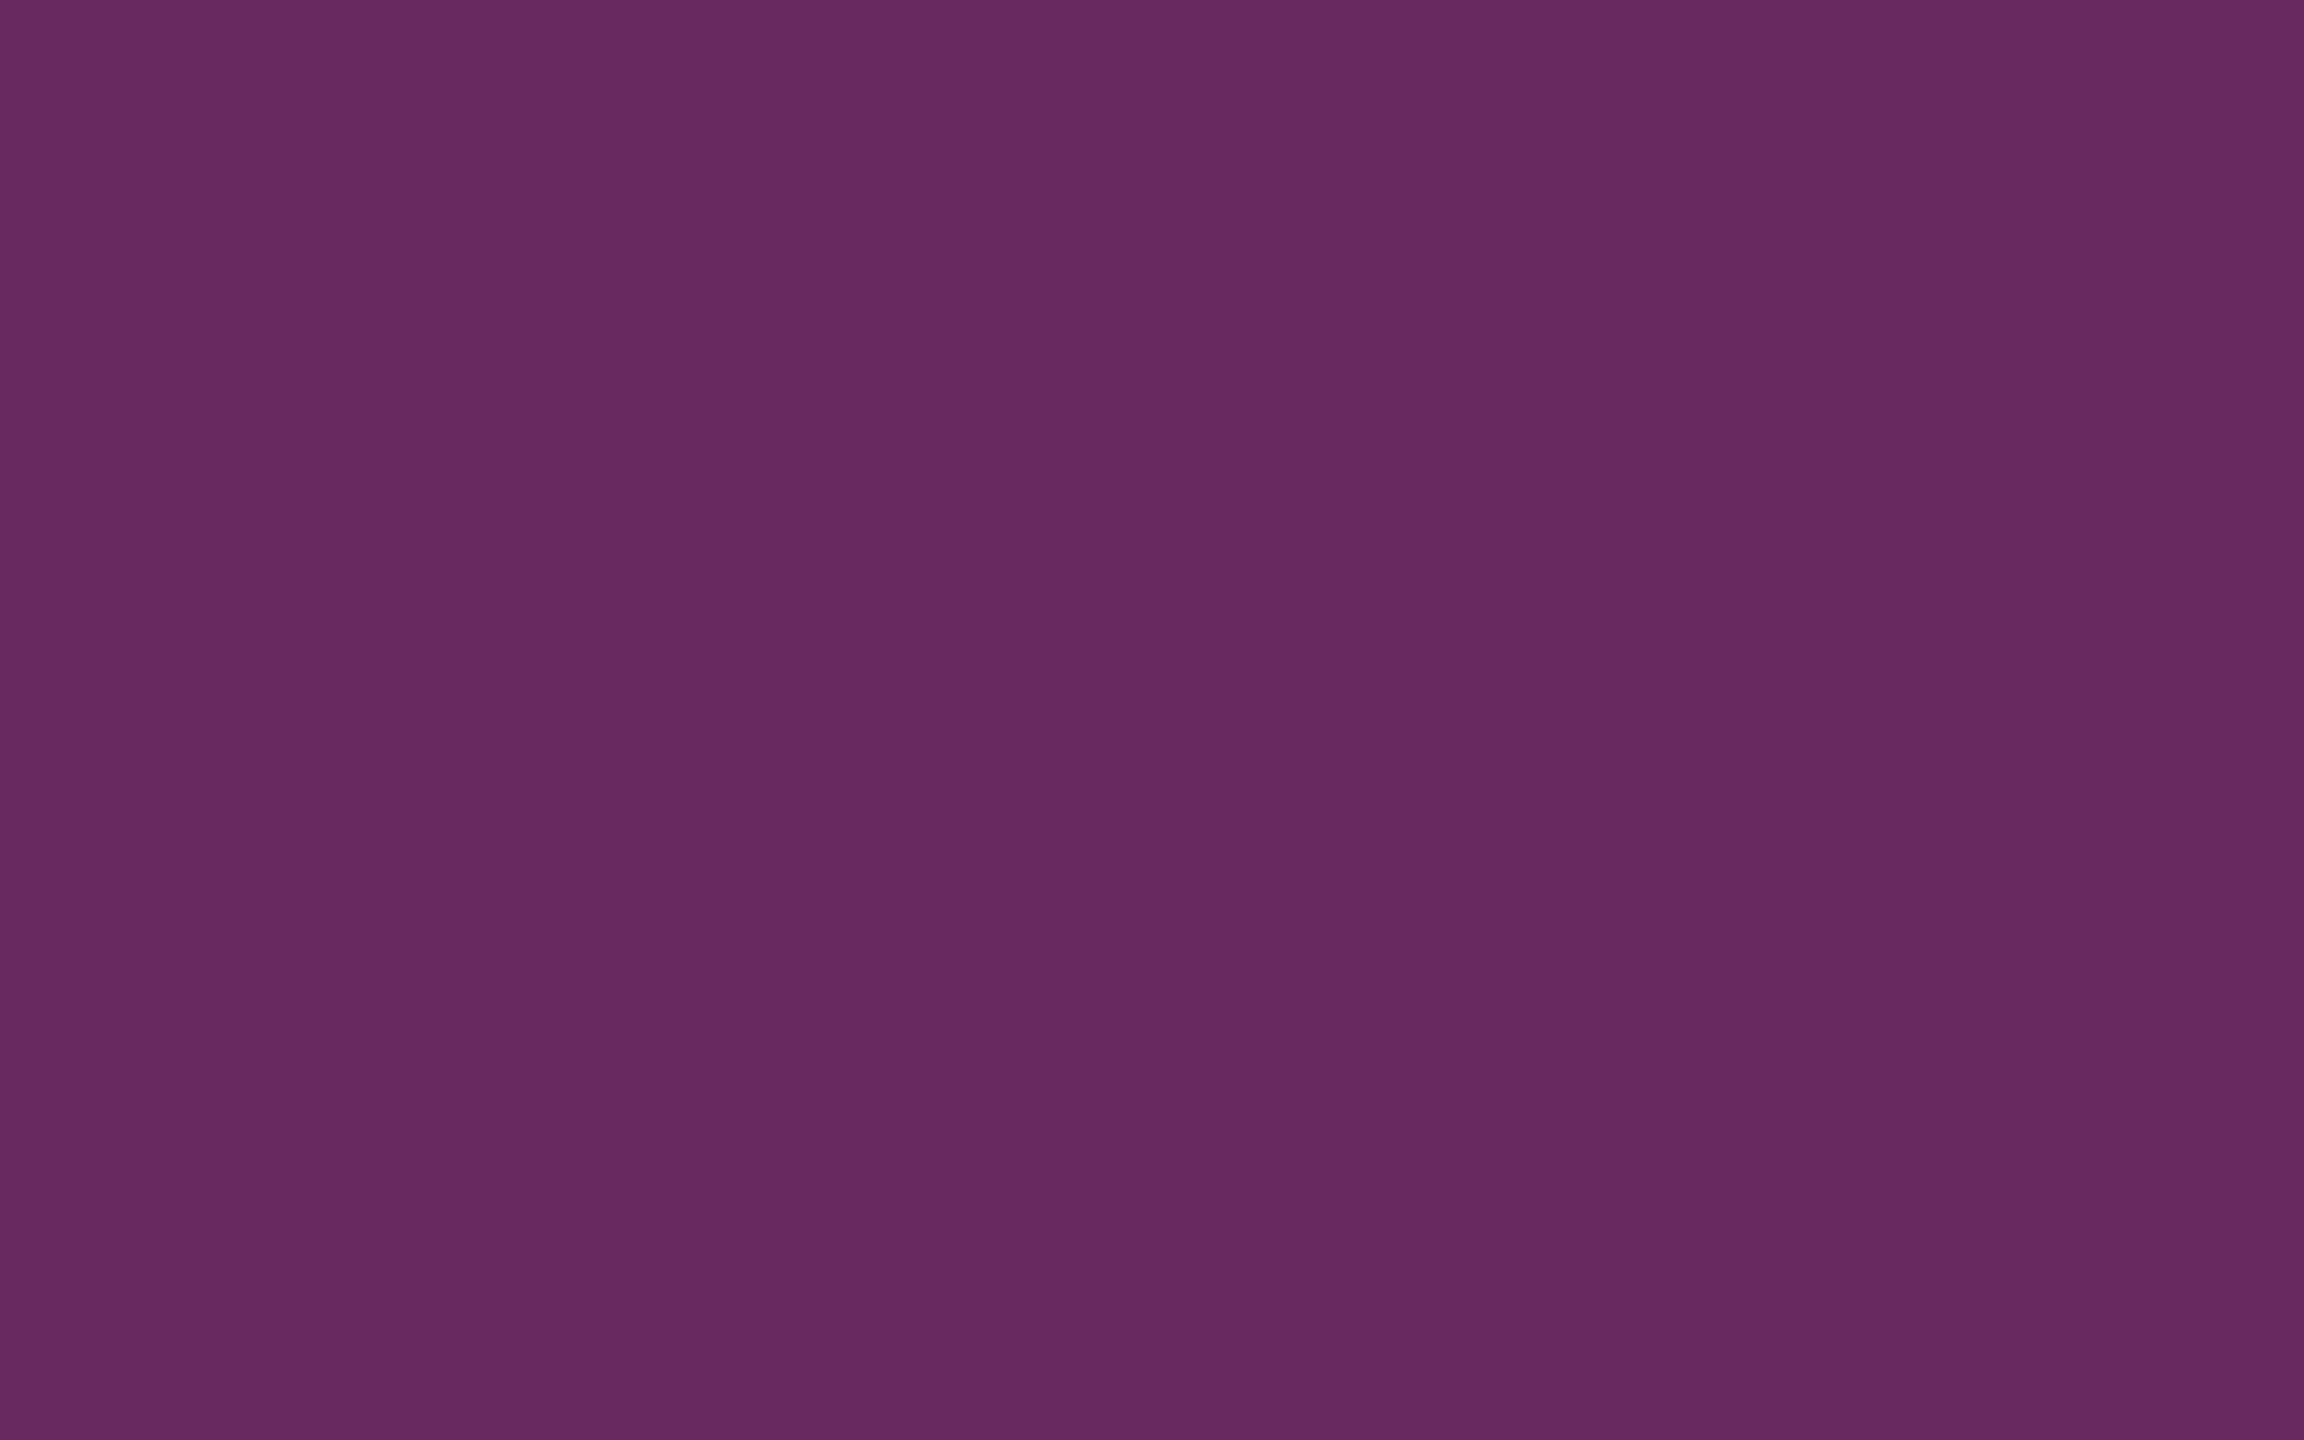 2304x1440 Palatinate Purple Solid Color Background